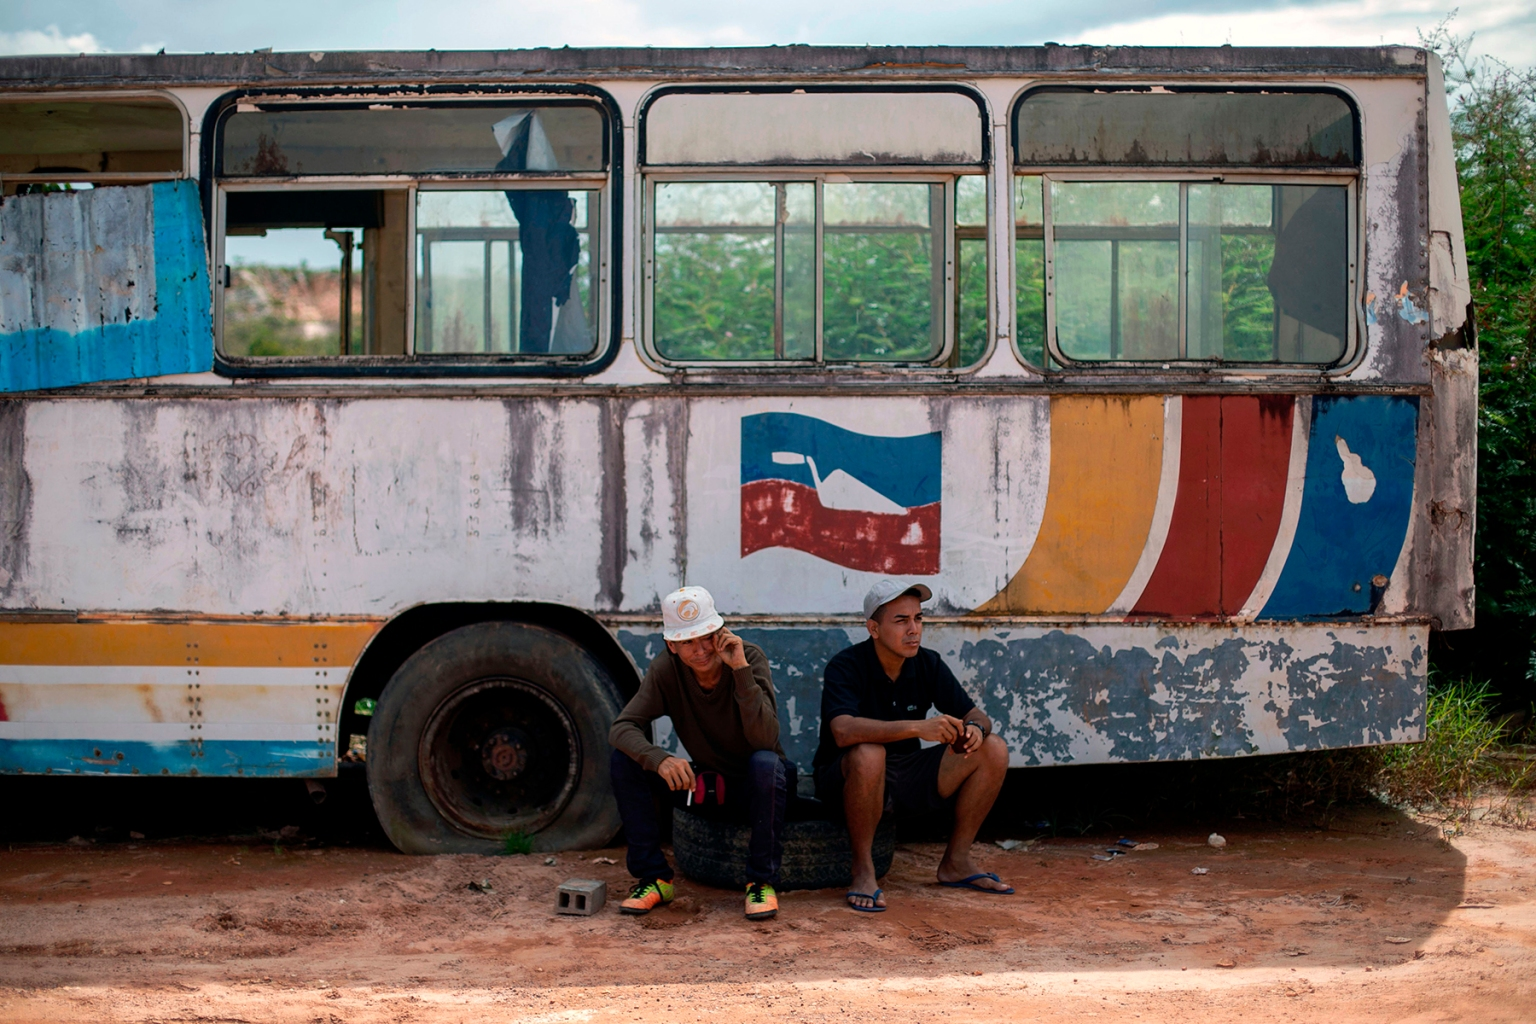 Venezuelans rest on the side of the road near Pacaraima, Brazil, on Aug. 20. Pacaraima residents recently drove Venezuelan migrants out of improvised camps amid growing tensions in the border town. MAURO PIMENTEL/AFP/Getty Images